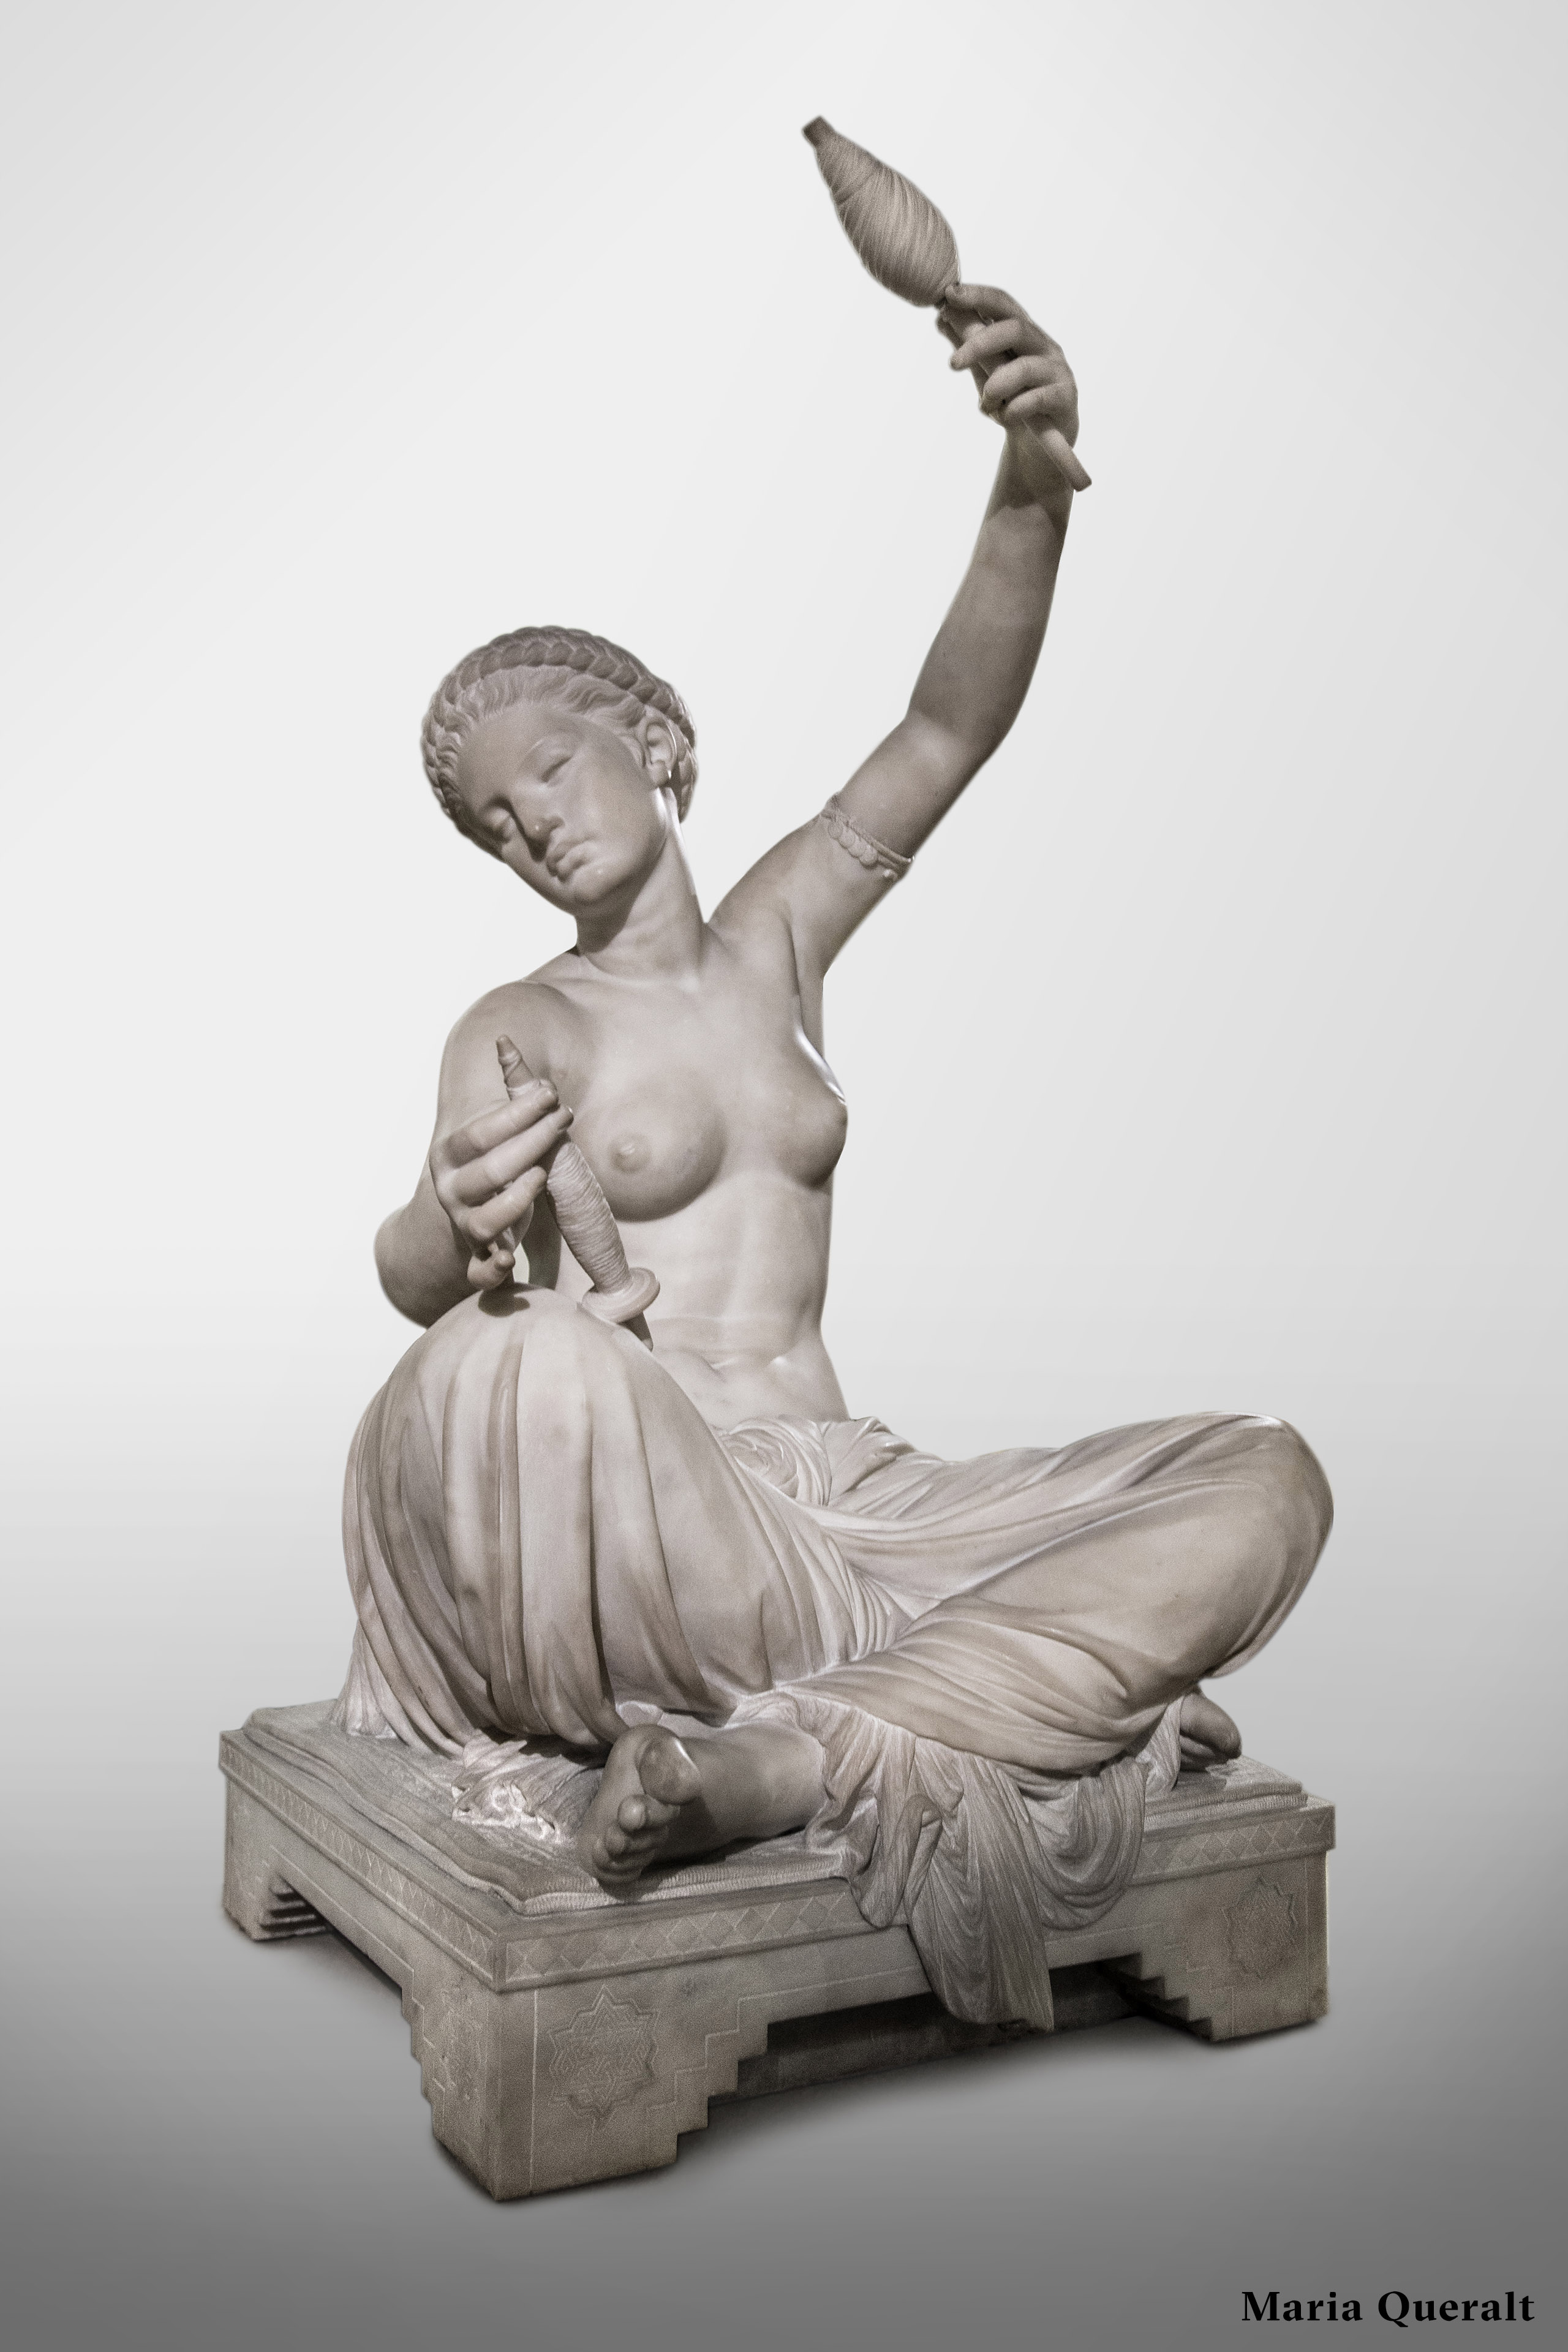 Marble Sculpture named Spinner of Megara by Louis-Ernest Barrias, 1870. Musée D'Orsay, Paris. Photography and retouch by Maria Queralt